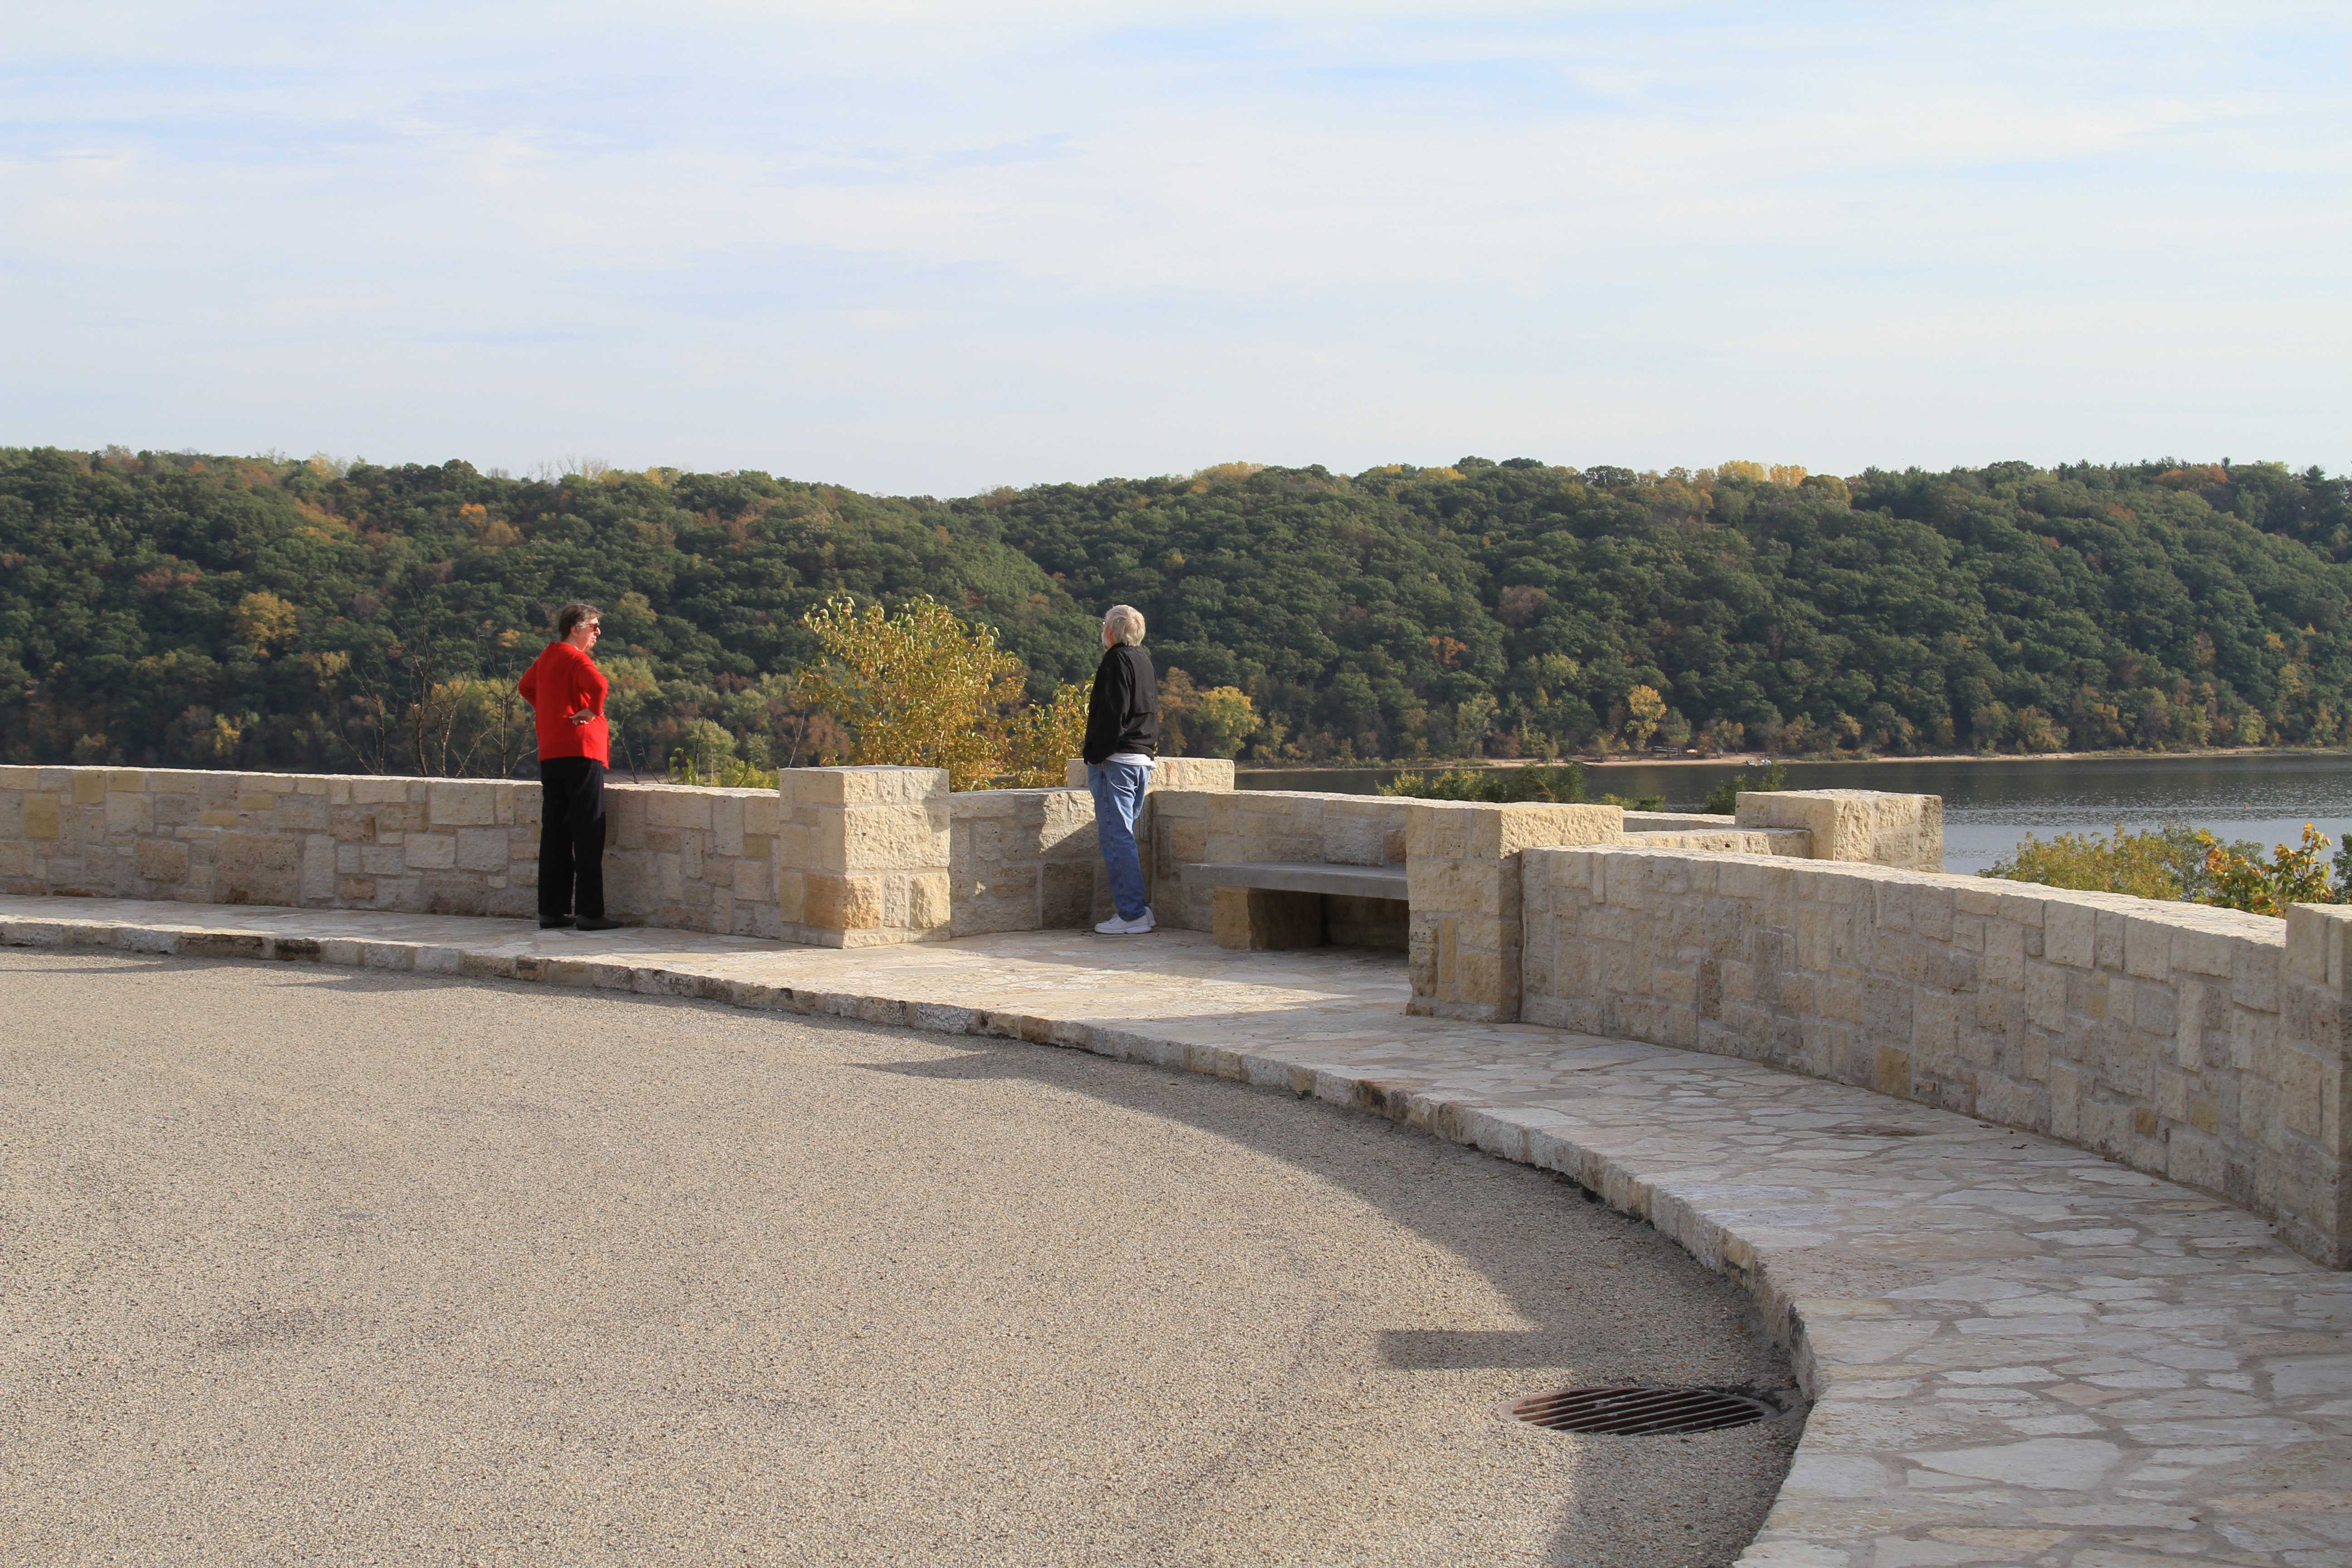 Lake St. Croix Overlook Restoration, a.k.a. Stillwater Overlook South